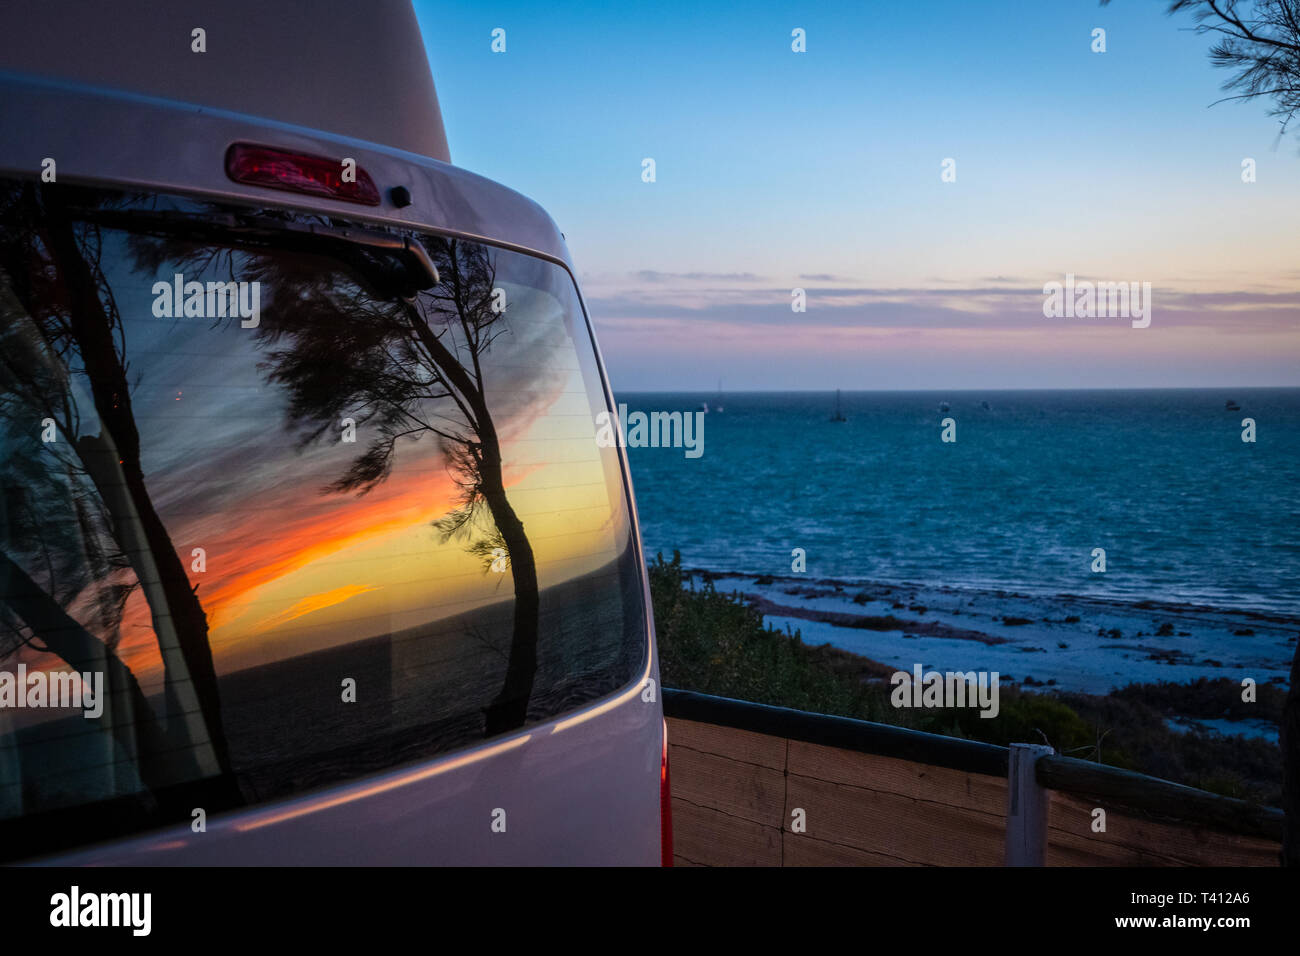 7cdd204af7 Reflection of tree silhouettes on campervan window in front of Indian Ocean  in Australia - Stock